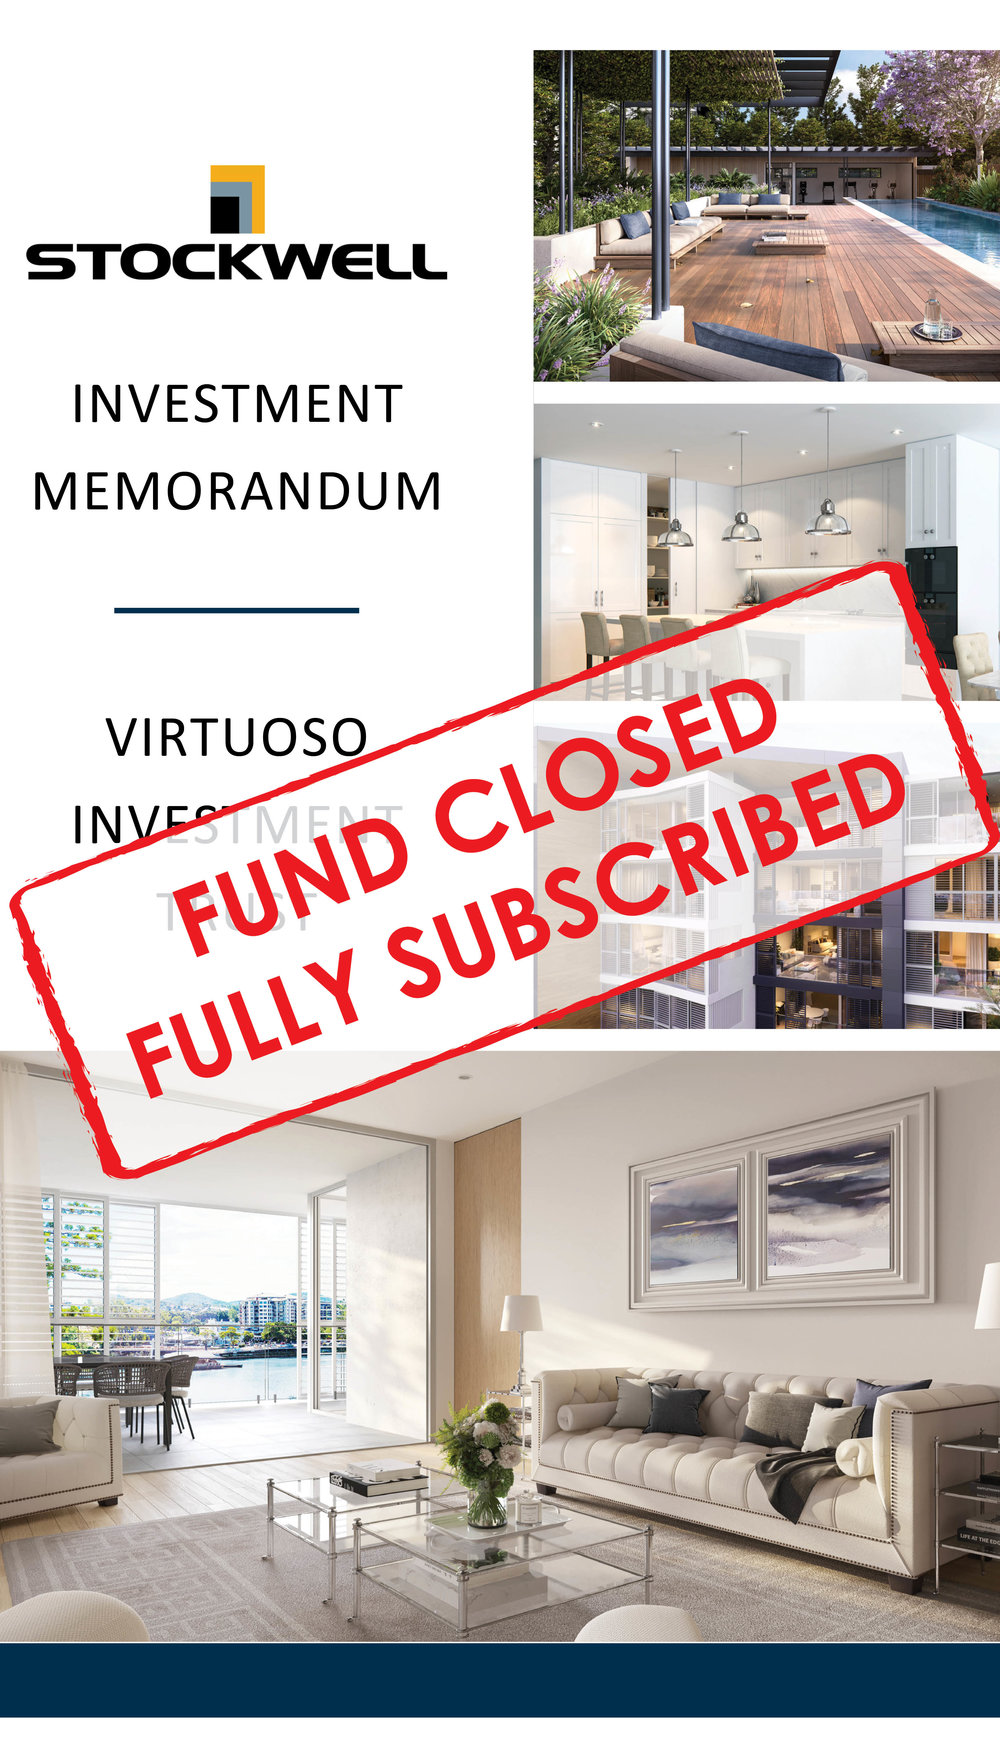 Virtuoso Opportunity Brief_front page now open.jpg